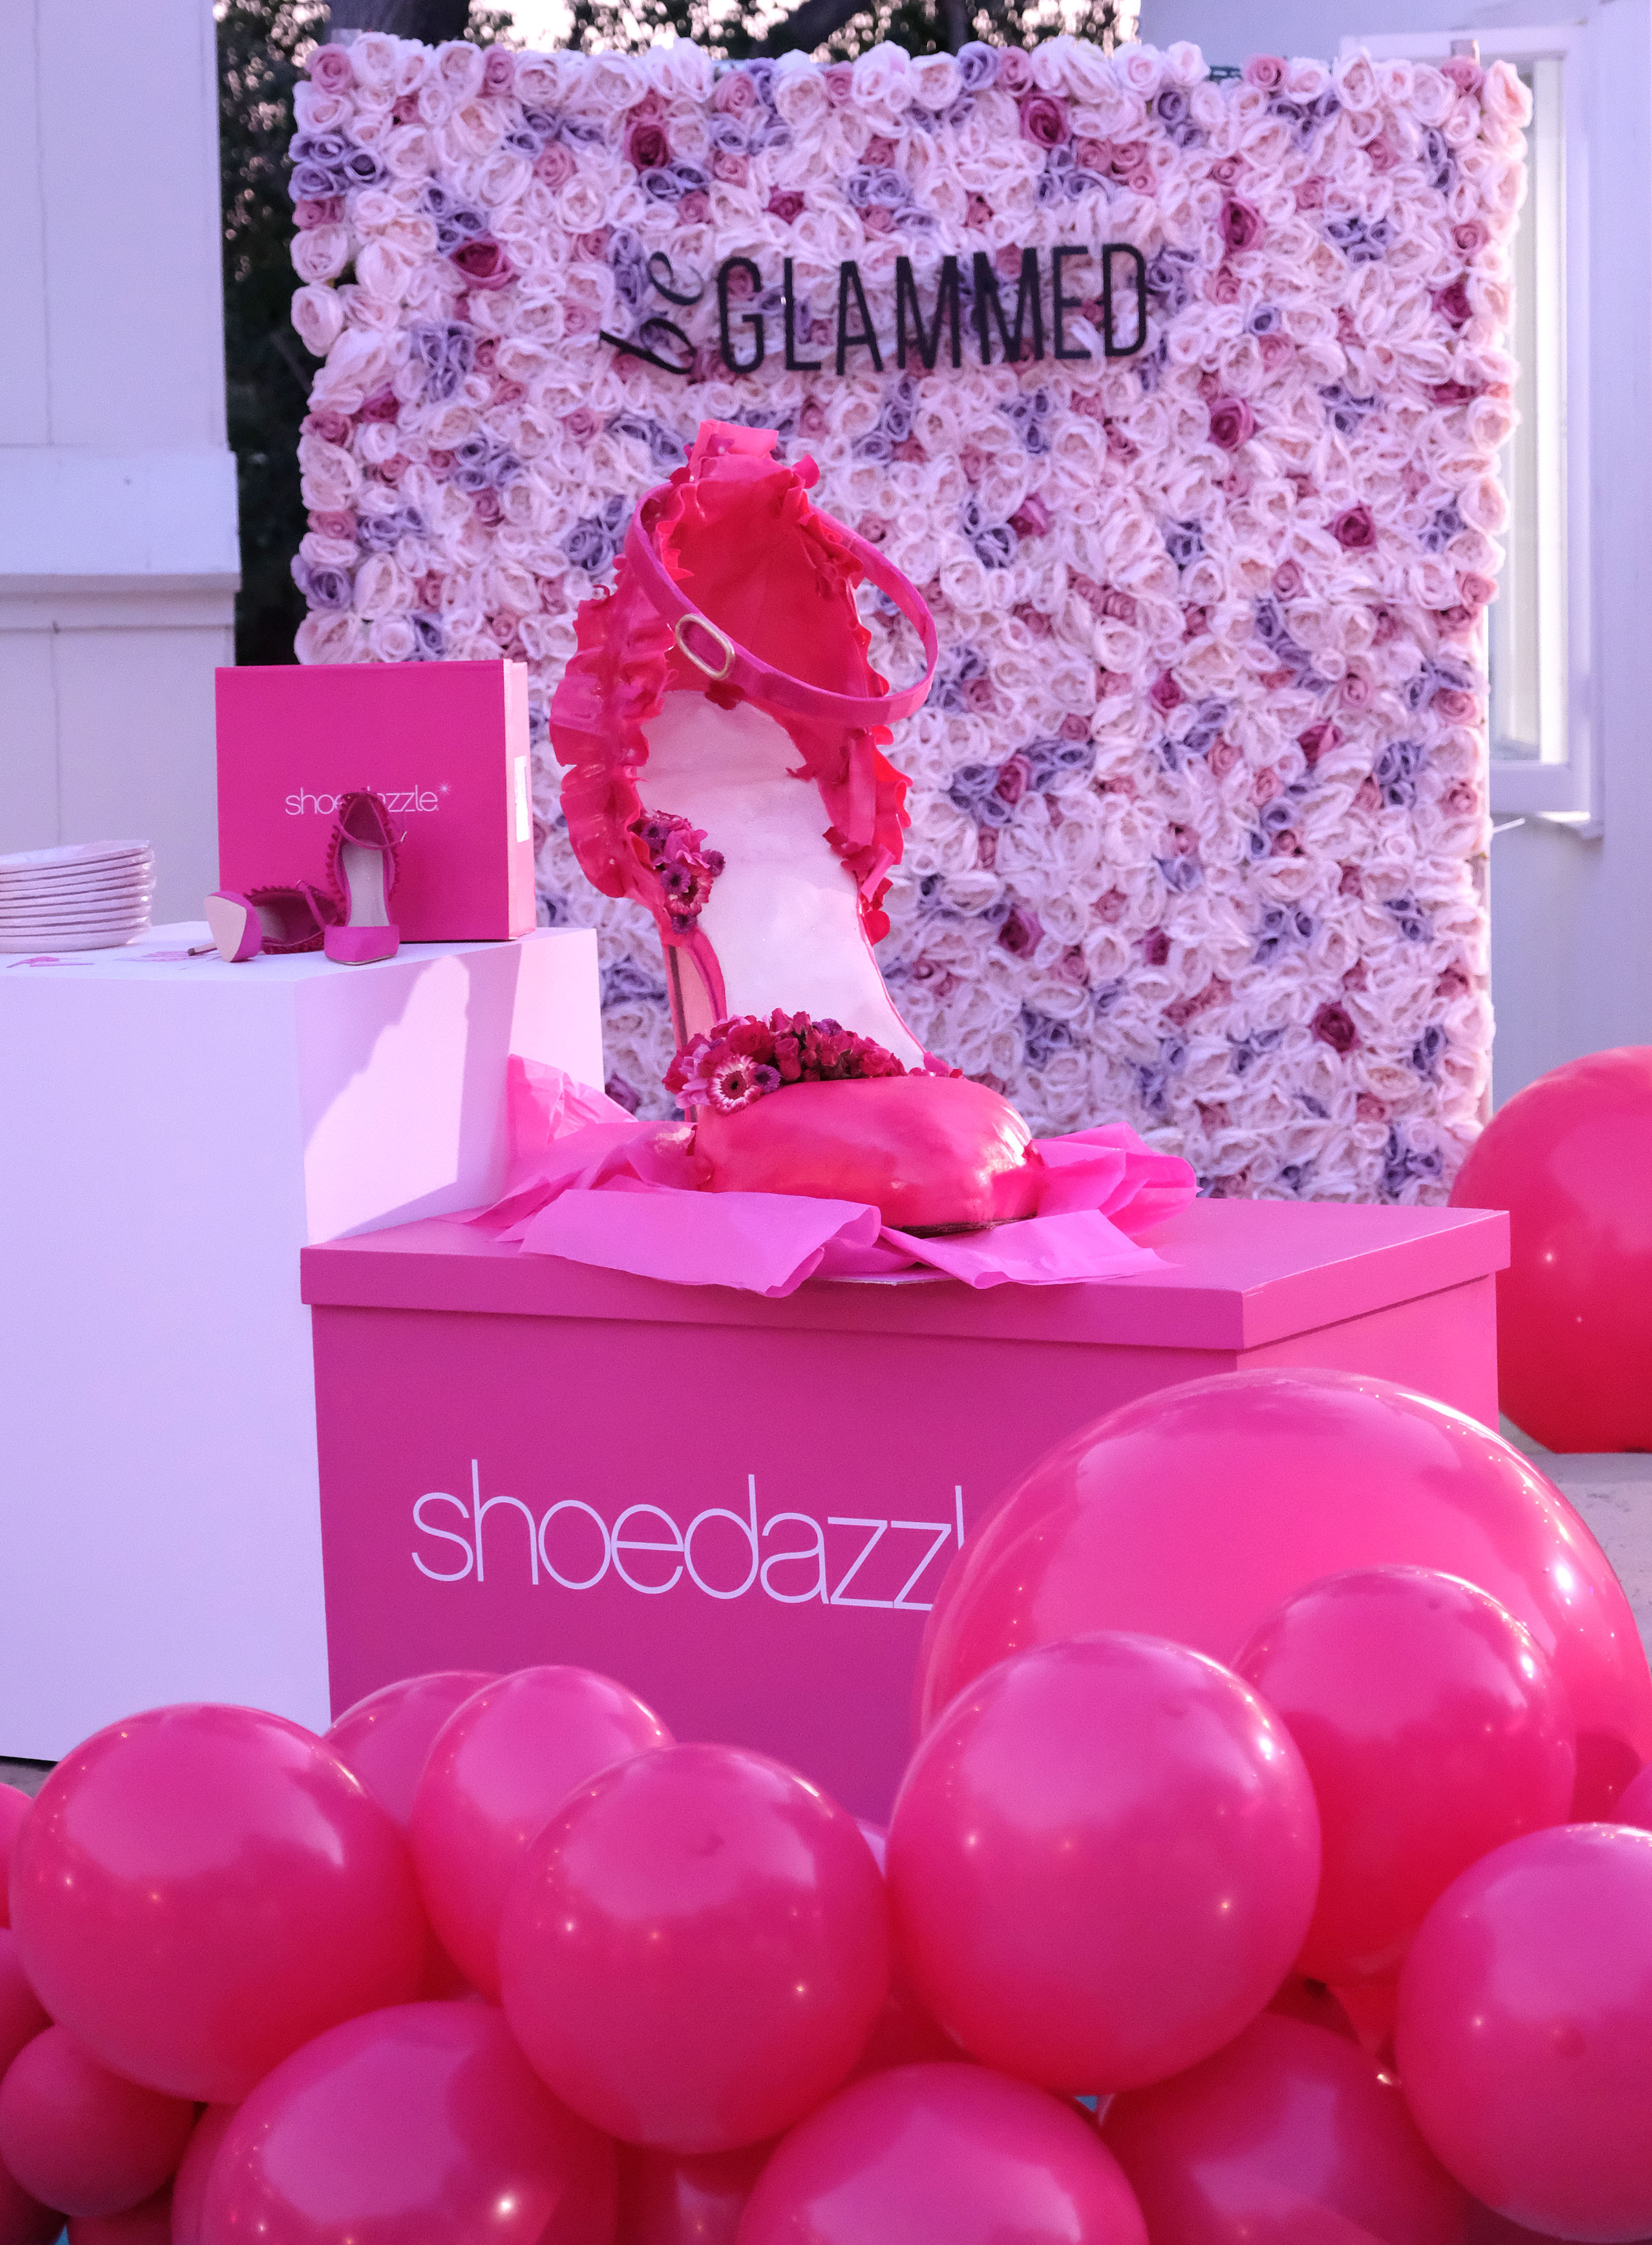 Shoedazzle x BarbieStyle Event, Los Angeles, USA – 31 Jan 2018